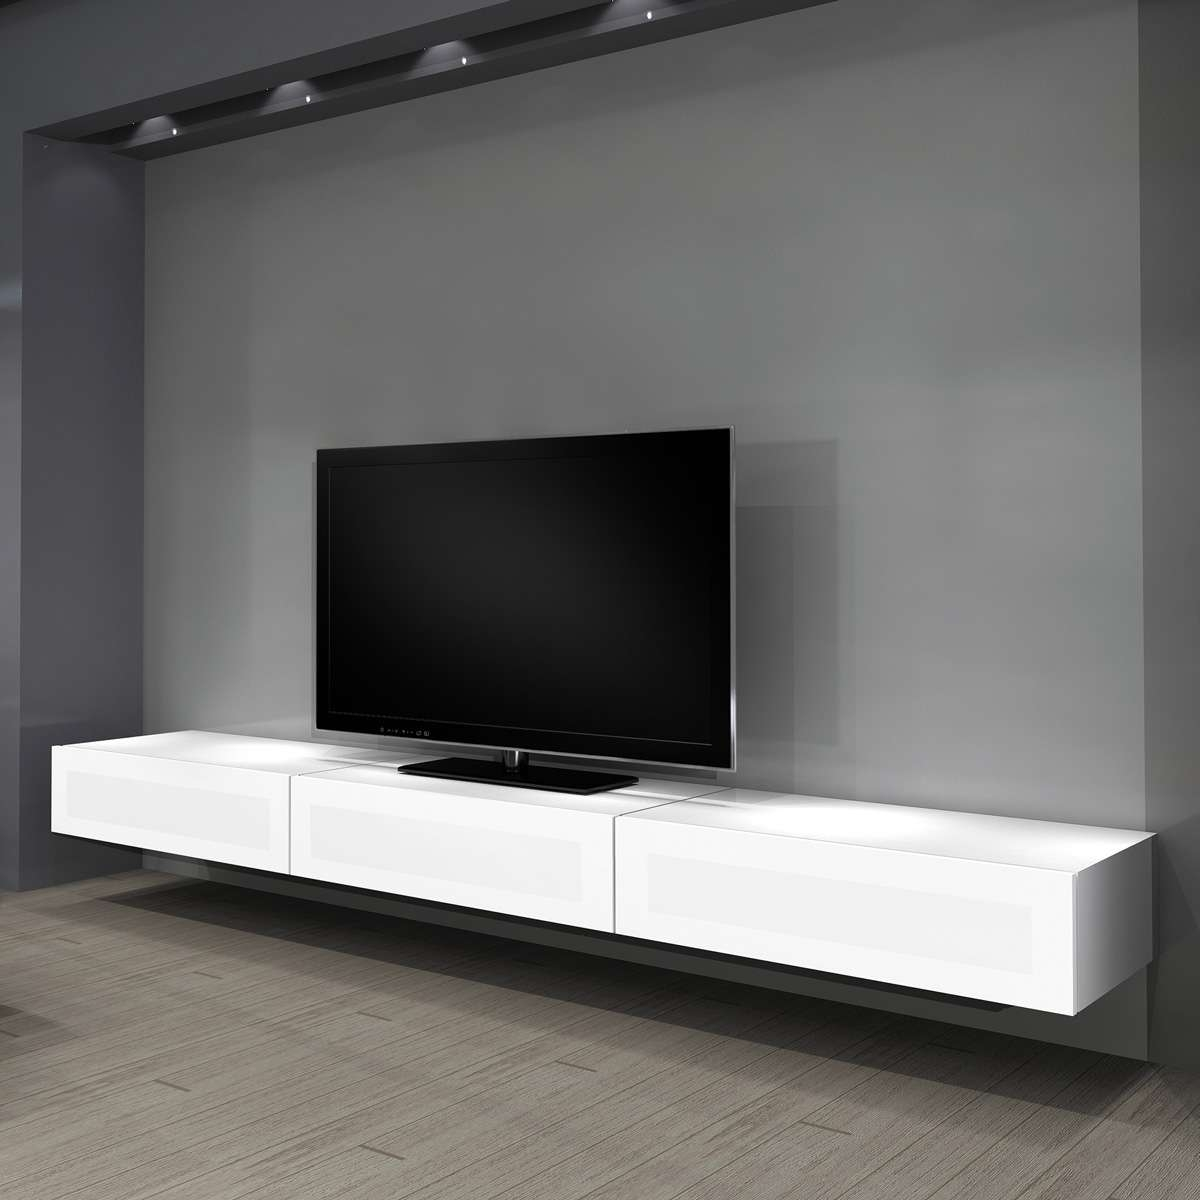 Floating Long White Wooden Cabinet With Tv On The Top Placed On With Regard To Long White Tv Cabinets (View 13 of 20)